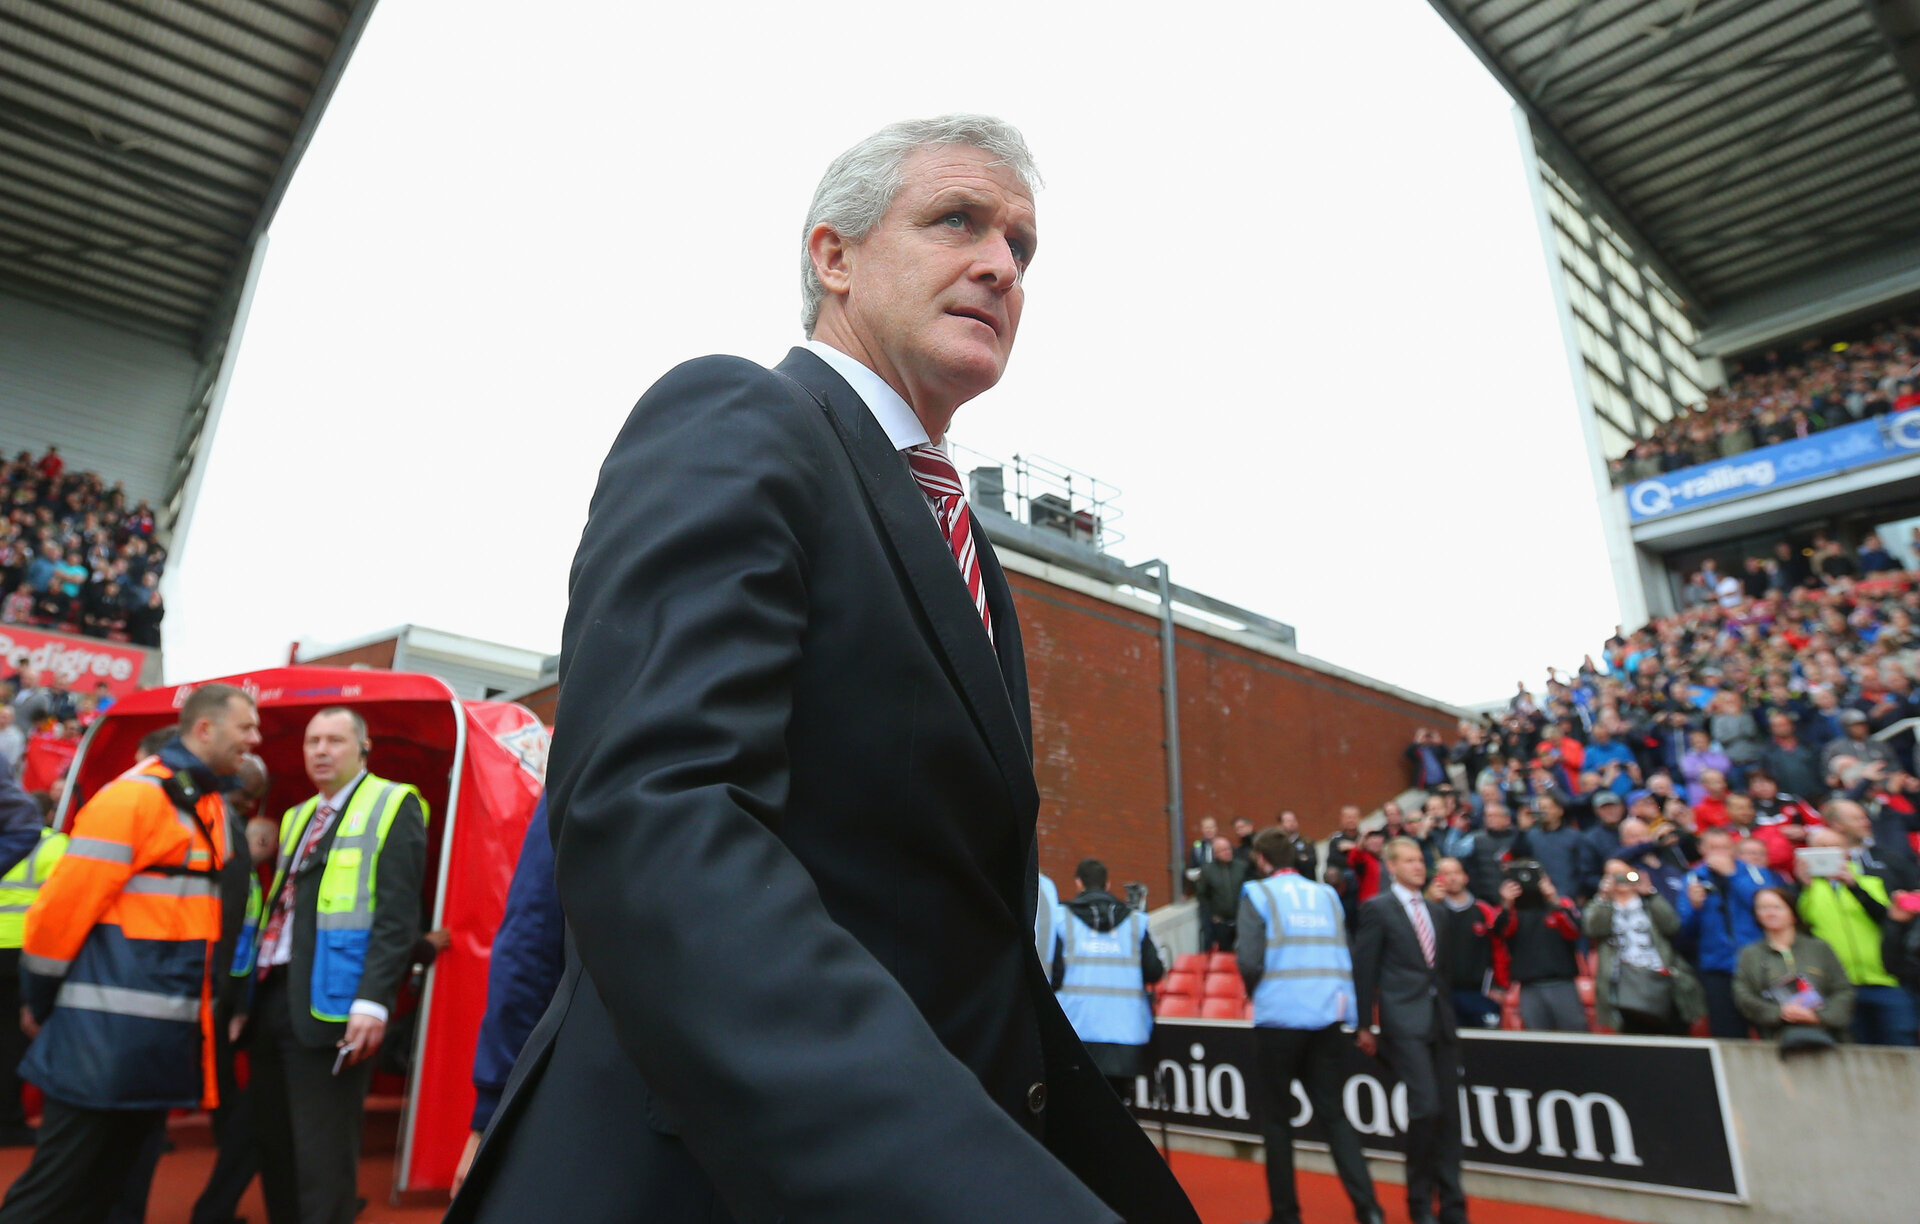 STOKE ON TRENT, ENGLAND - MAY 24:  Mark Hughes manager of Stoke City looks on during the Barclays Premier League match between Stoke City and Liverpool at Britannia Stadium on May 24, 2015 in Stoke on Trent, England.  (Photo by Dave Thompson/Getty Images)